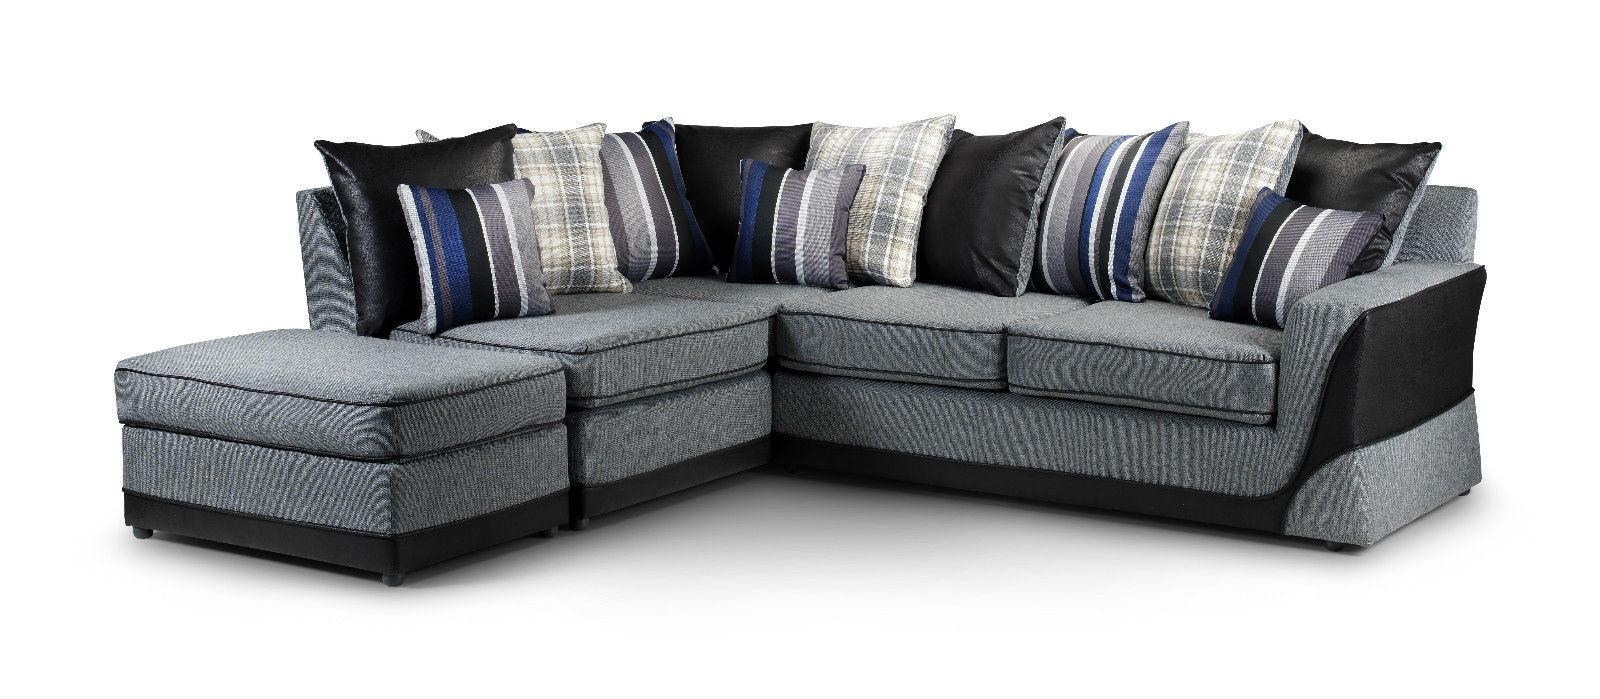 Photo Sofas And Corner Most Widely Used Home Design Throughout Corner Sofa And Swivel Chairs (Image 19 of 20)